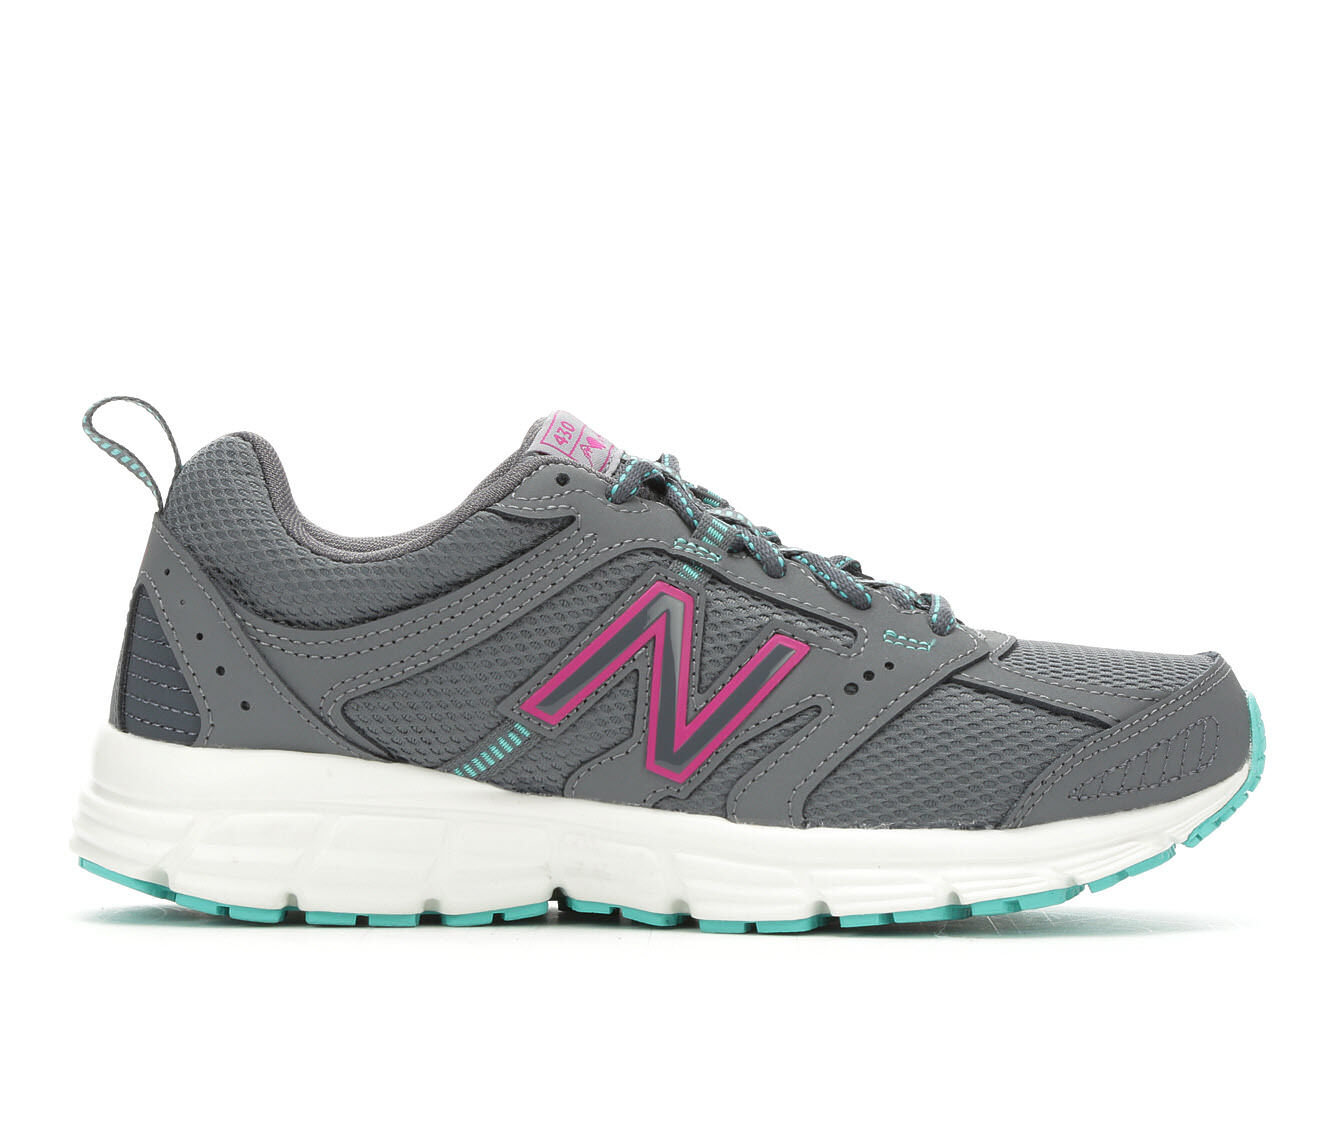 Women's New Balance W430V1 Trail Running Shoes Grey/Teal/Pink